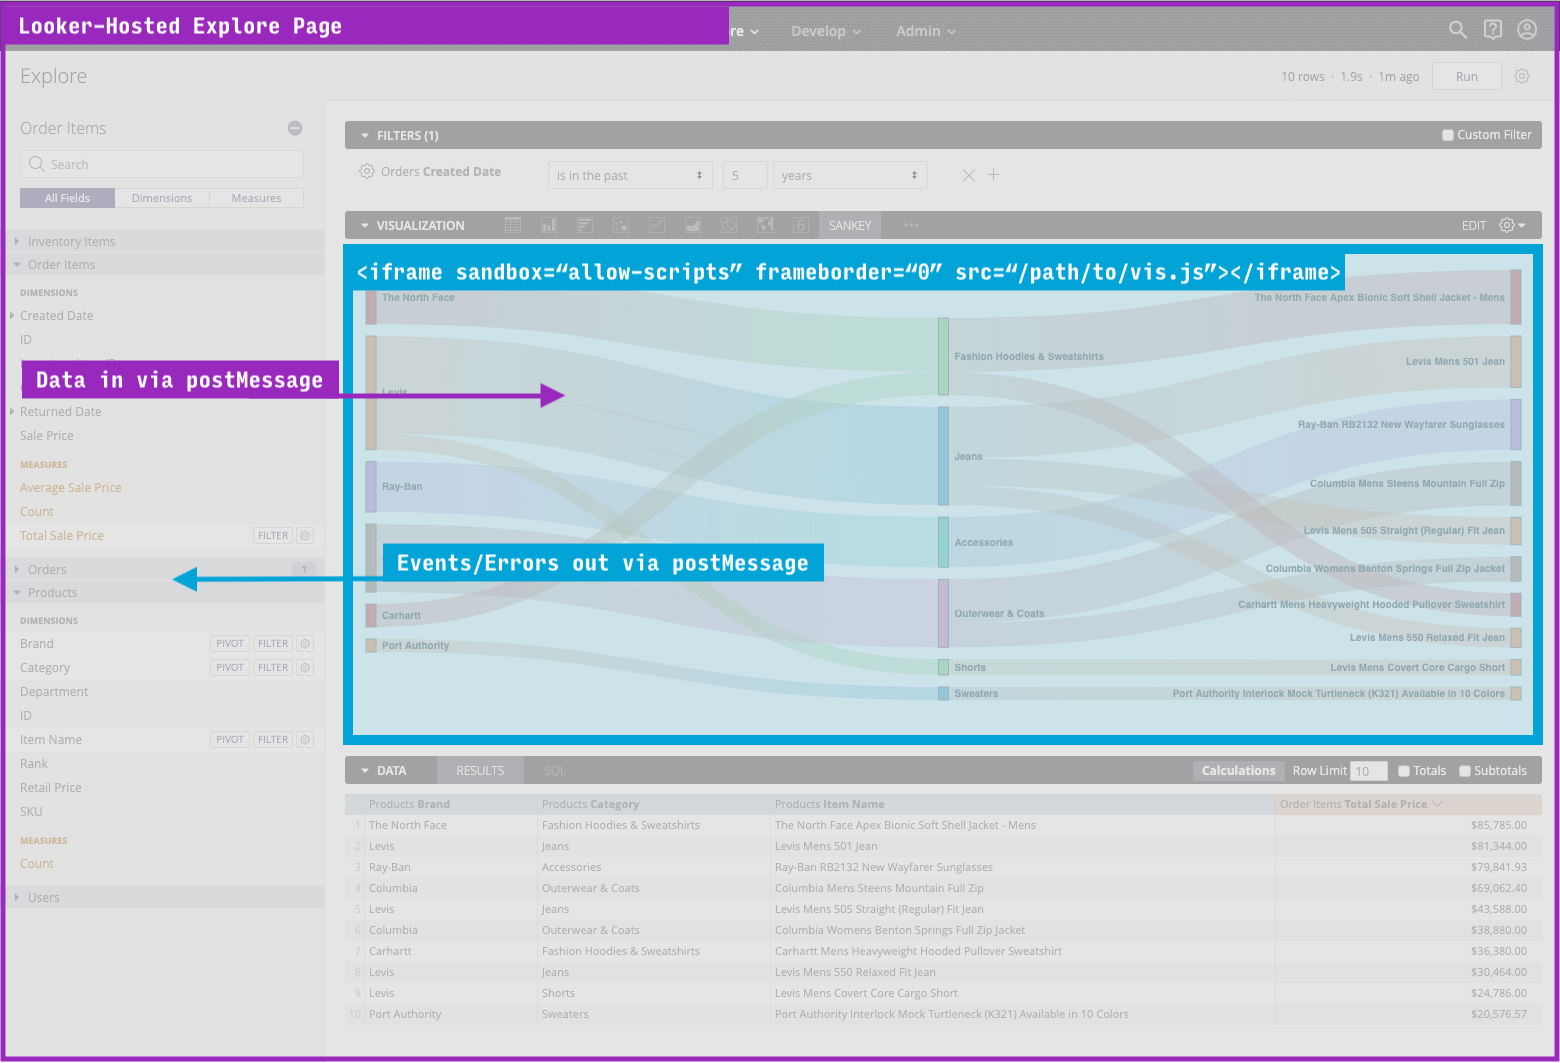 Looker explore page using an iframe to render custom data visualization